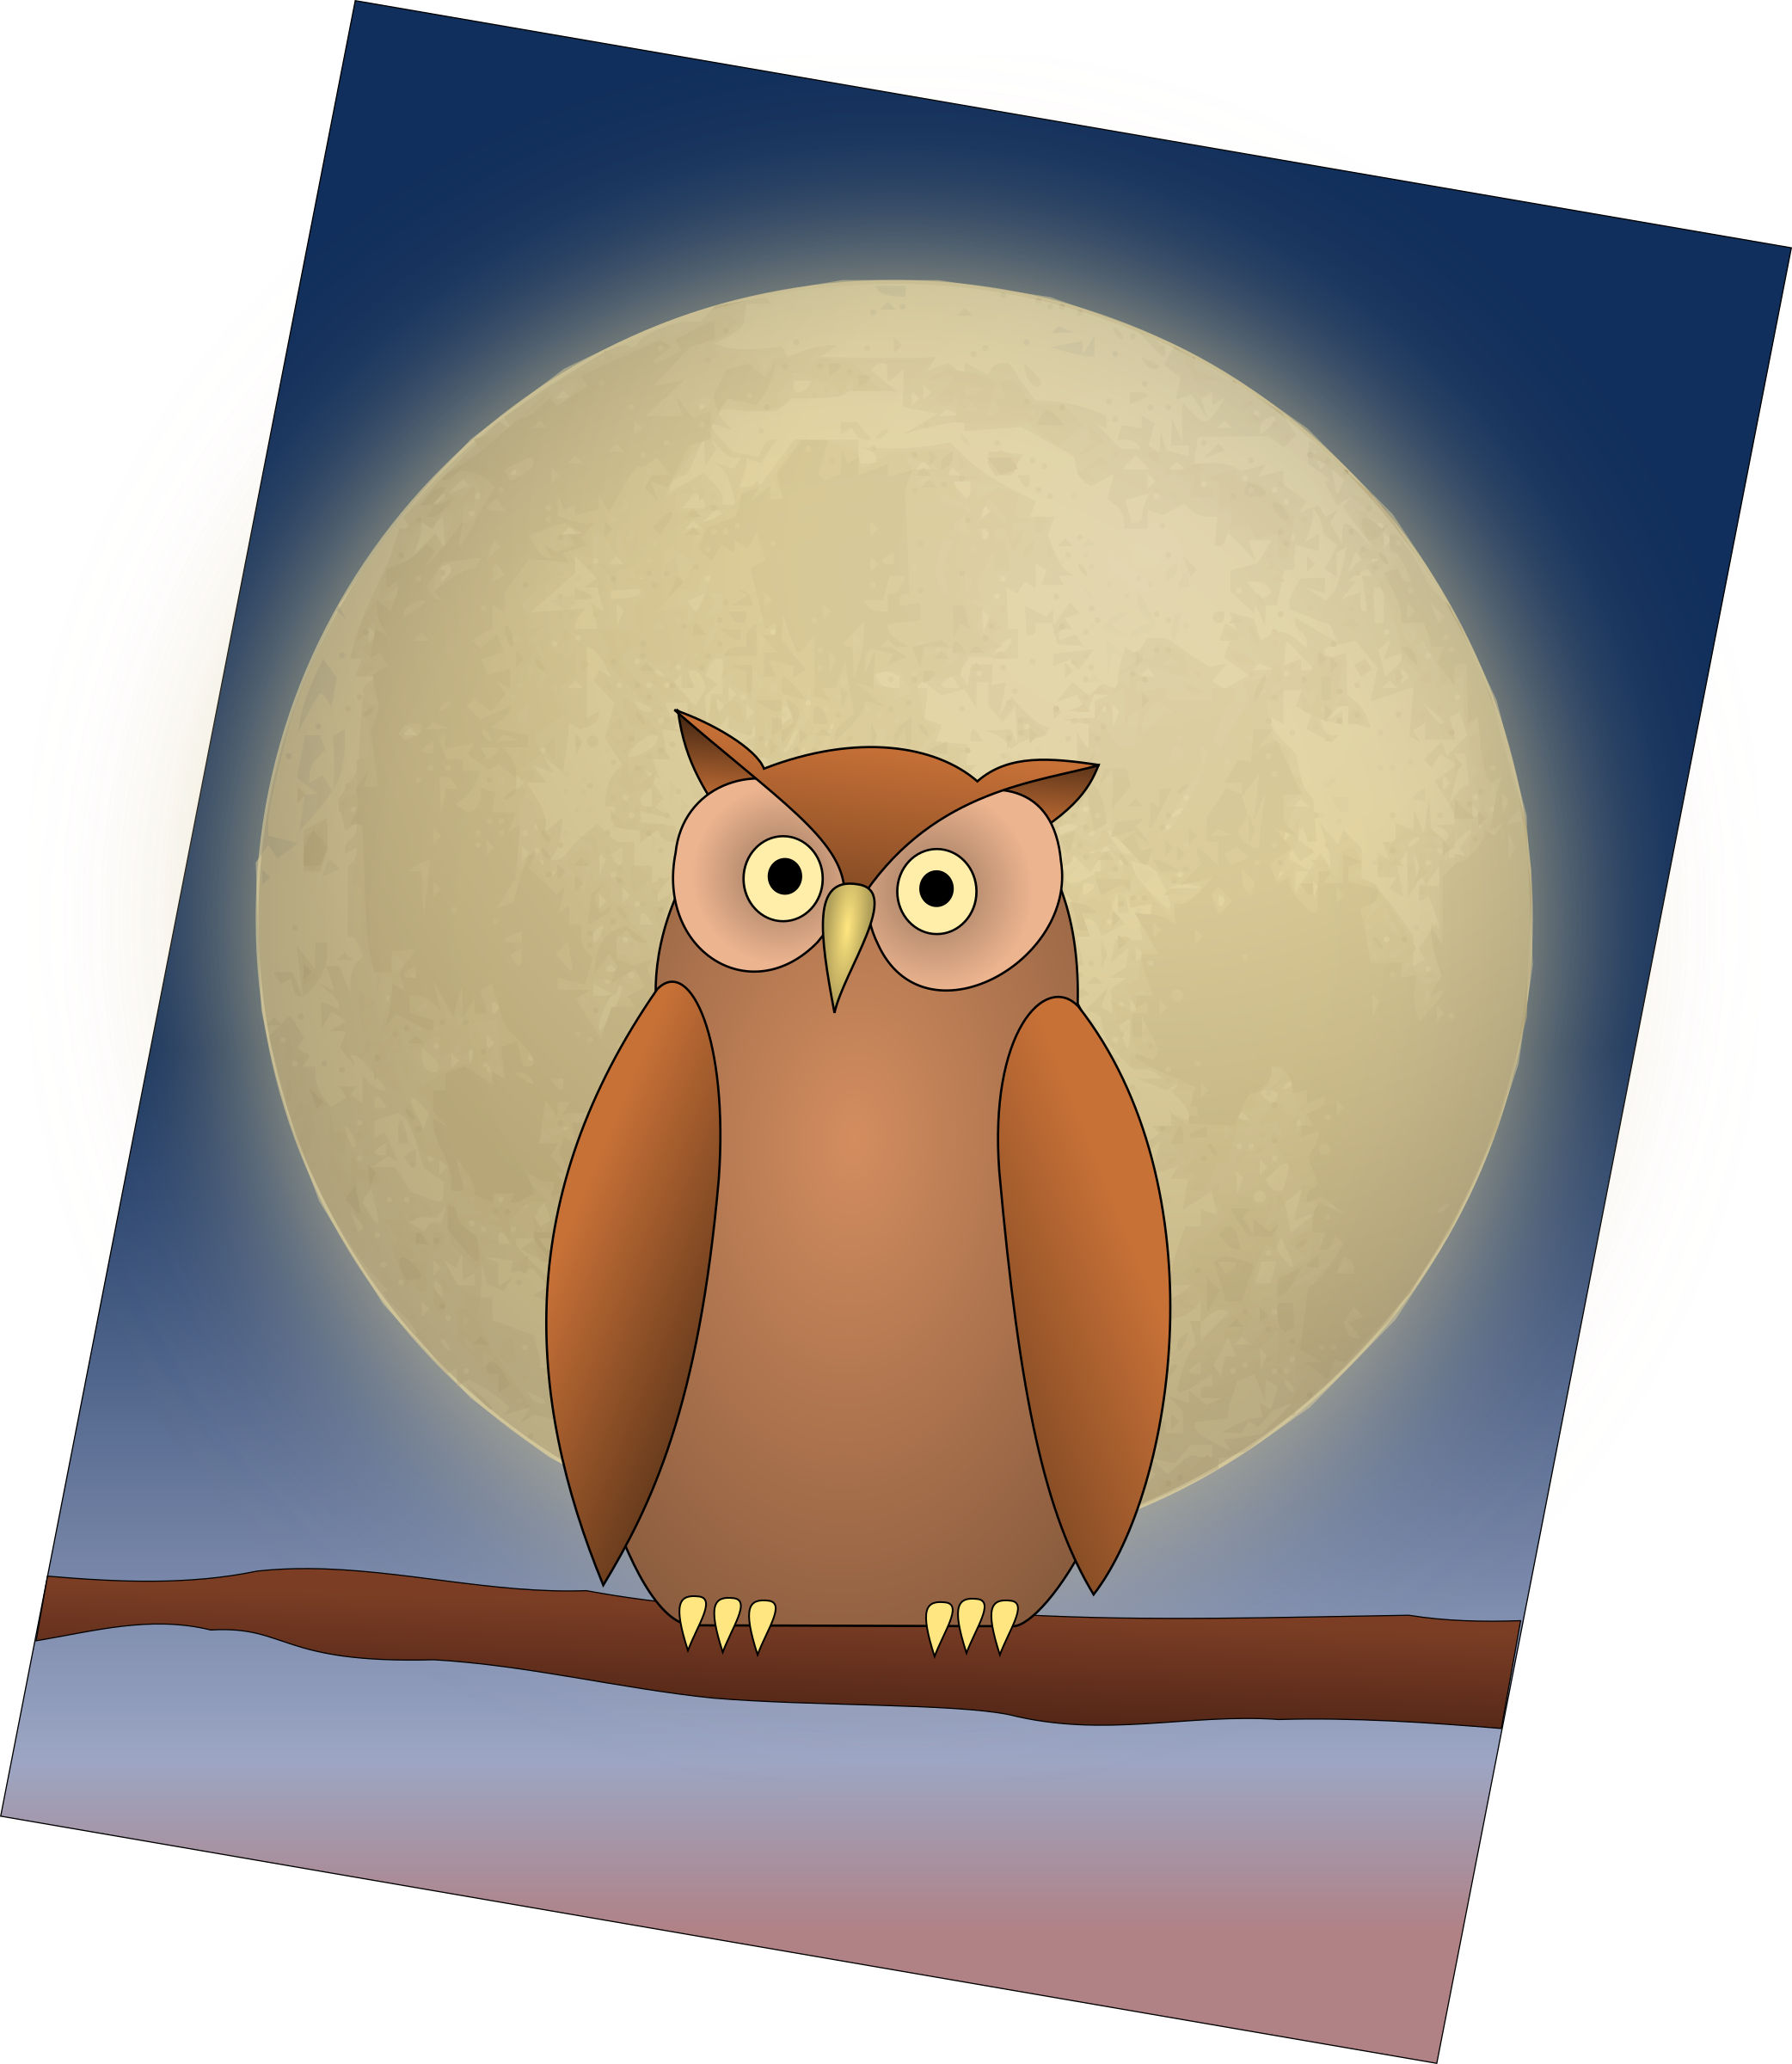 The Owl and The Moon by opk